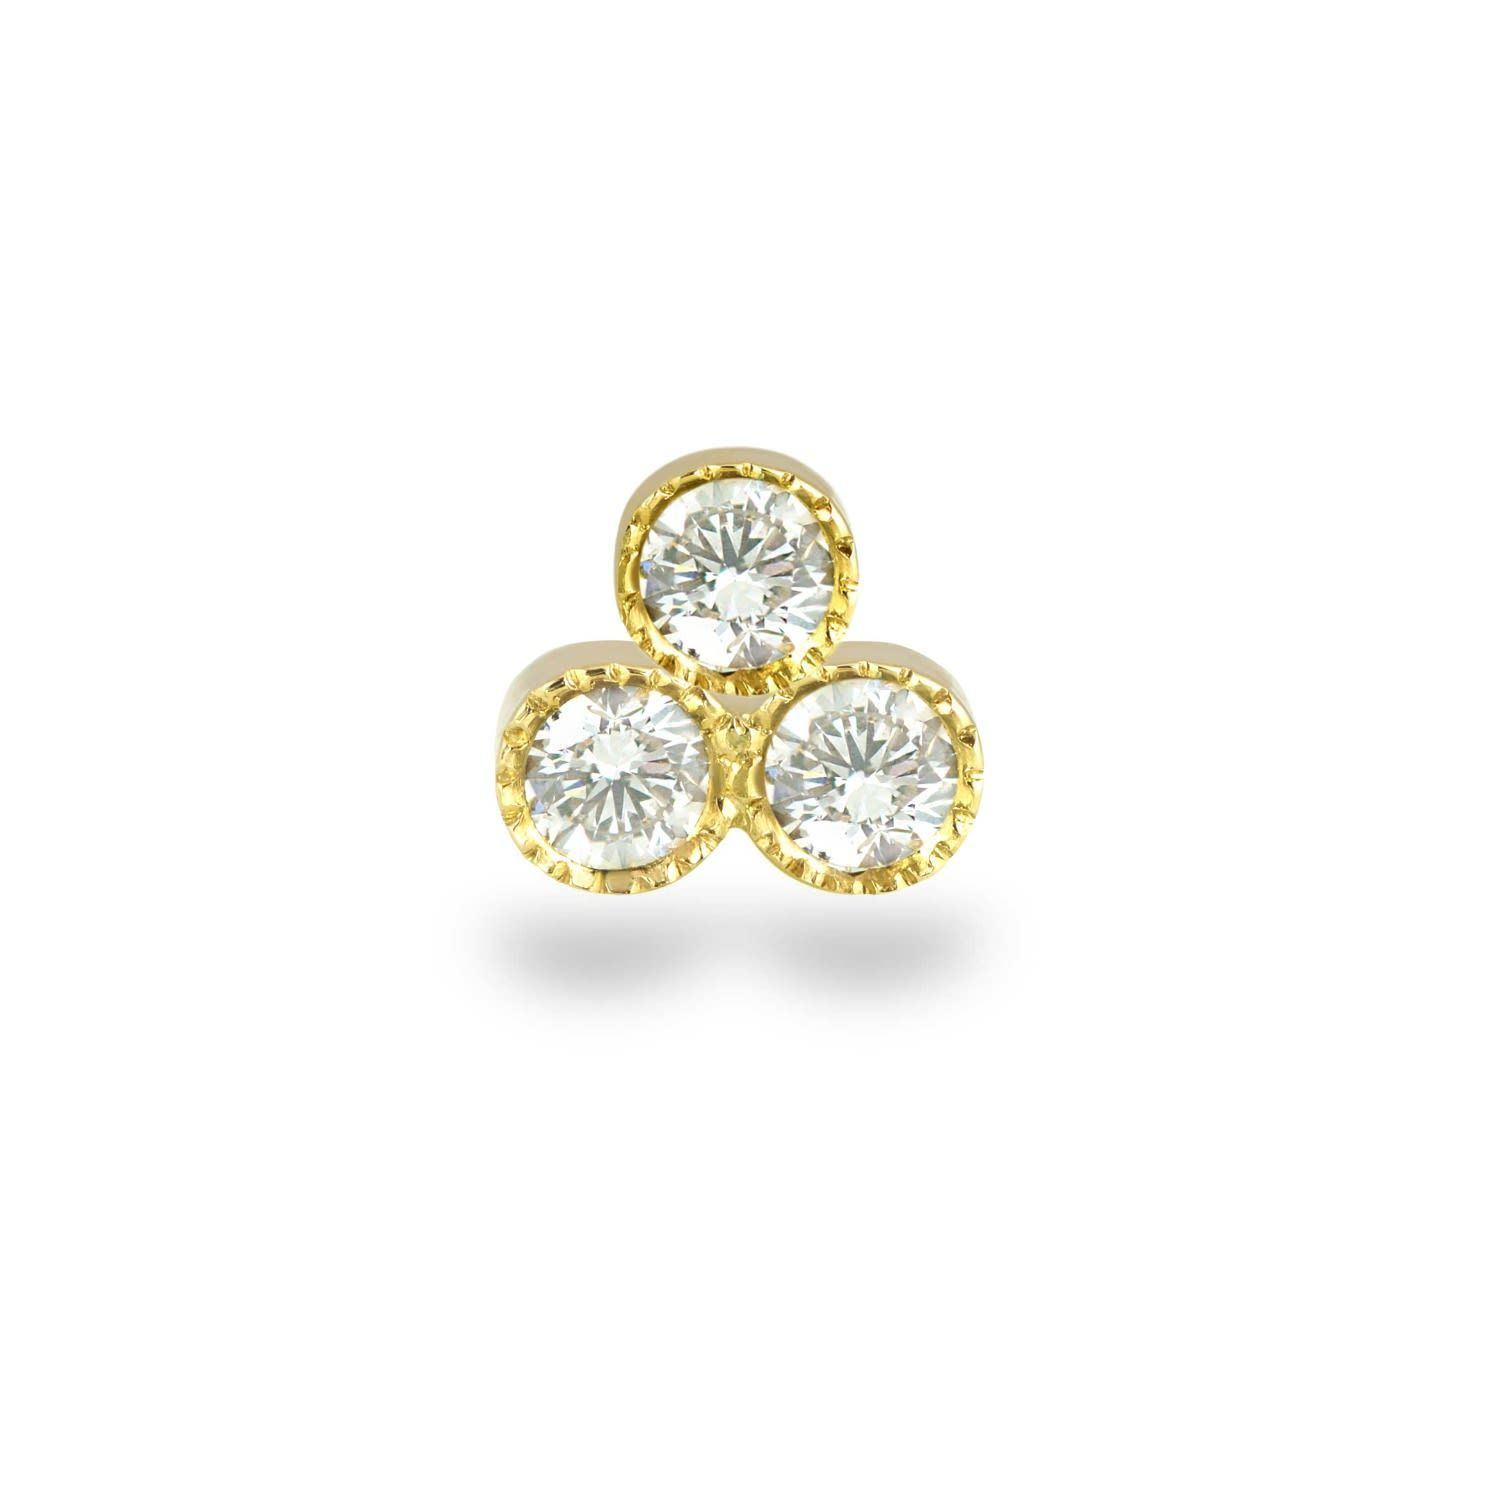 Lena Cohen Fine Jewellery - 18k Yellow Gold Milgrain Trio Diamond Cartilage Stud -  Lena Cohen Fine Jewellery – 18k Yellow Gold Milgrain Trio Diamond Cartilage Stud  - #18K #Cartilage #classyEarPiercings #Cohen #Diamond #EarPiercingsaesthetic #EarPiercingsformigraines #EarPiercingsnames #Fine #Gold #jewellery #kyliejennerEarPiercings #Lena #Milgrain #Stud #Trio #uniqueEarPiercings #Yellow